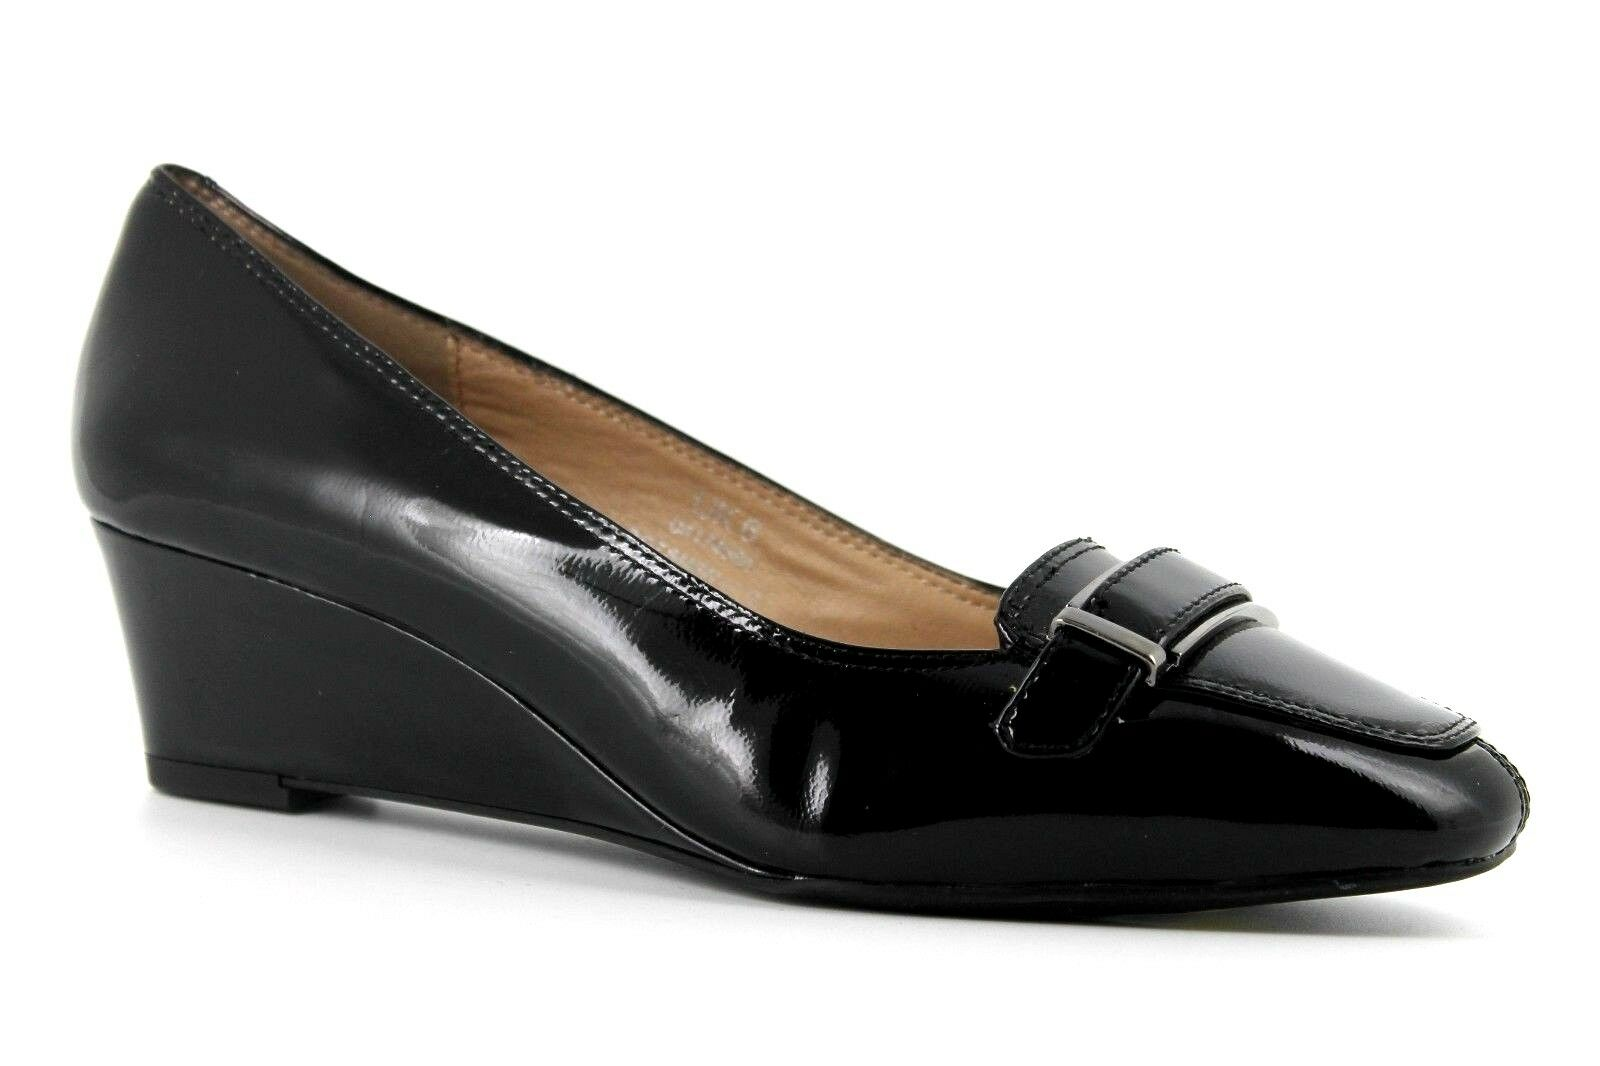 Marks & Spencer Footglove Womens UK 6 Wider Fit Black Patent Leather Wedge Shoes